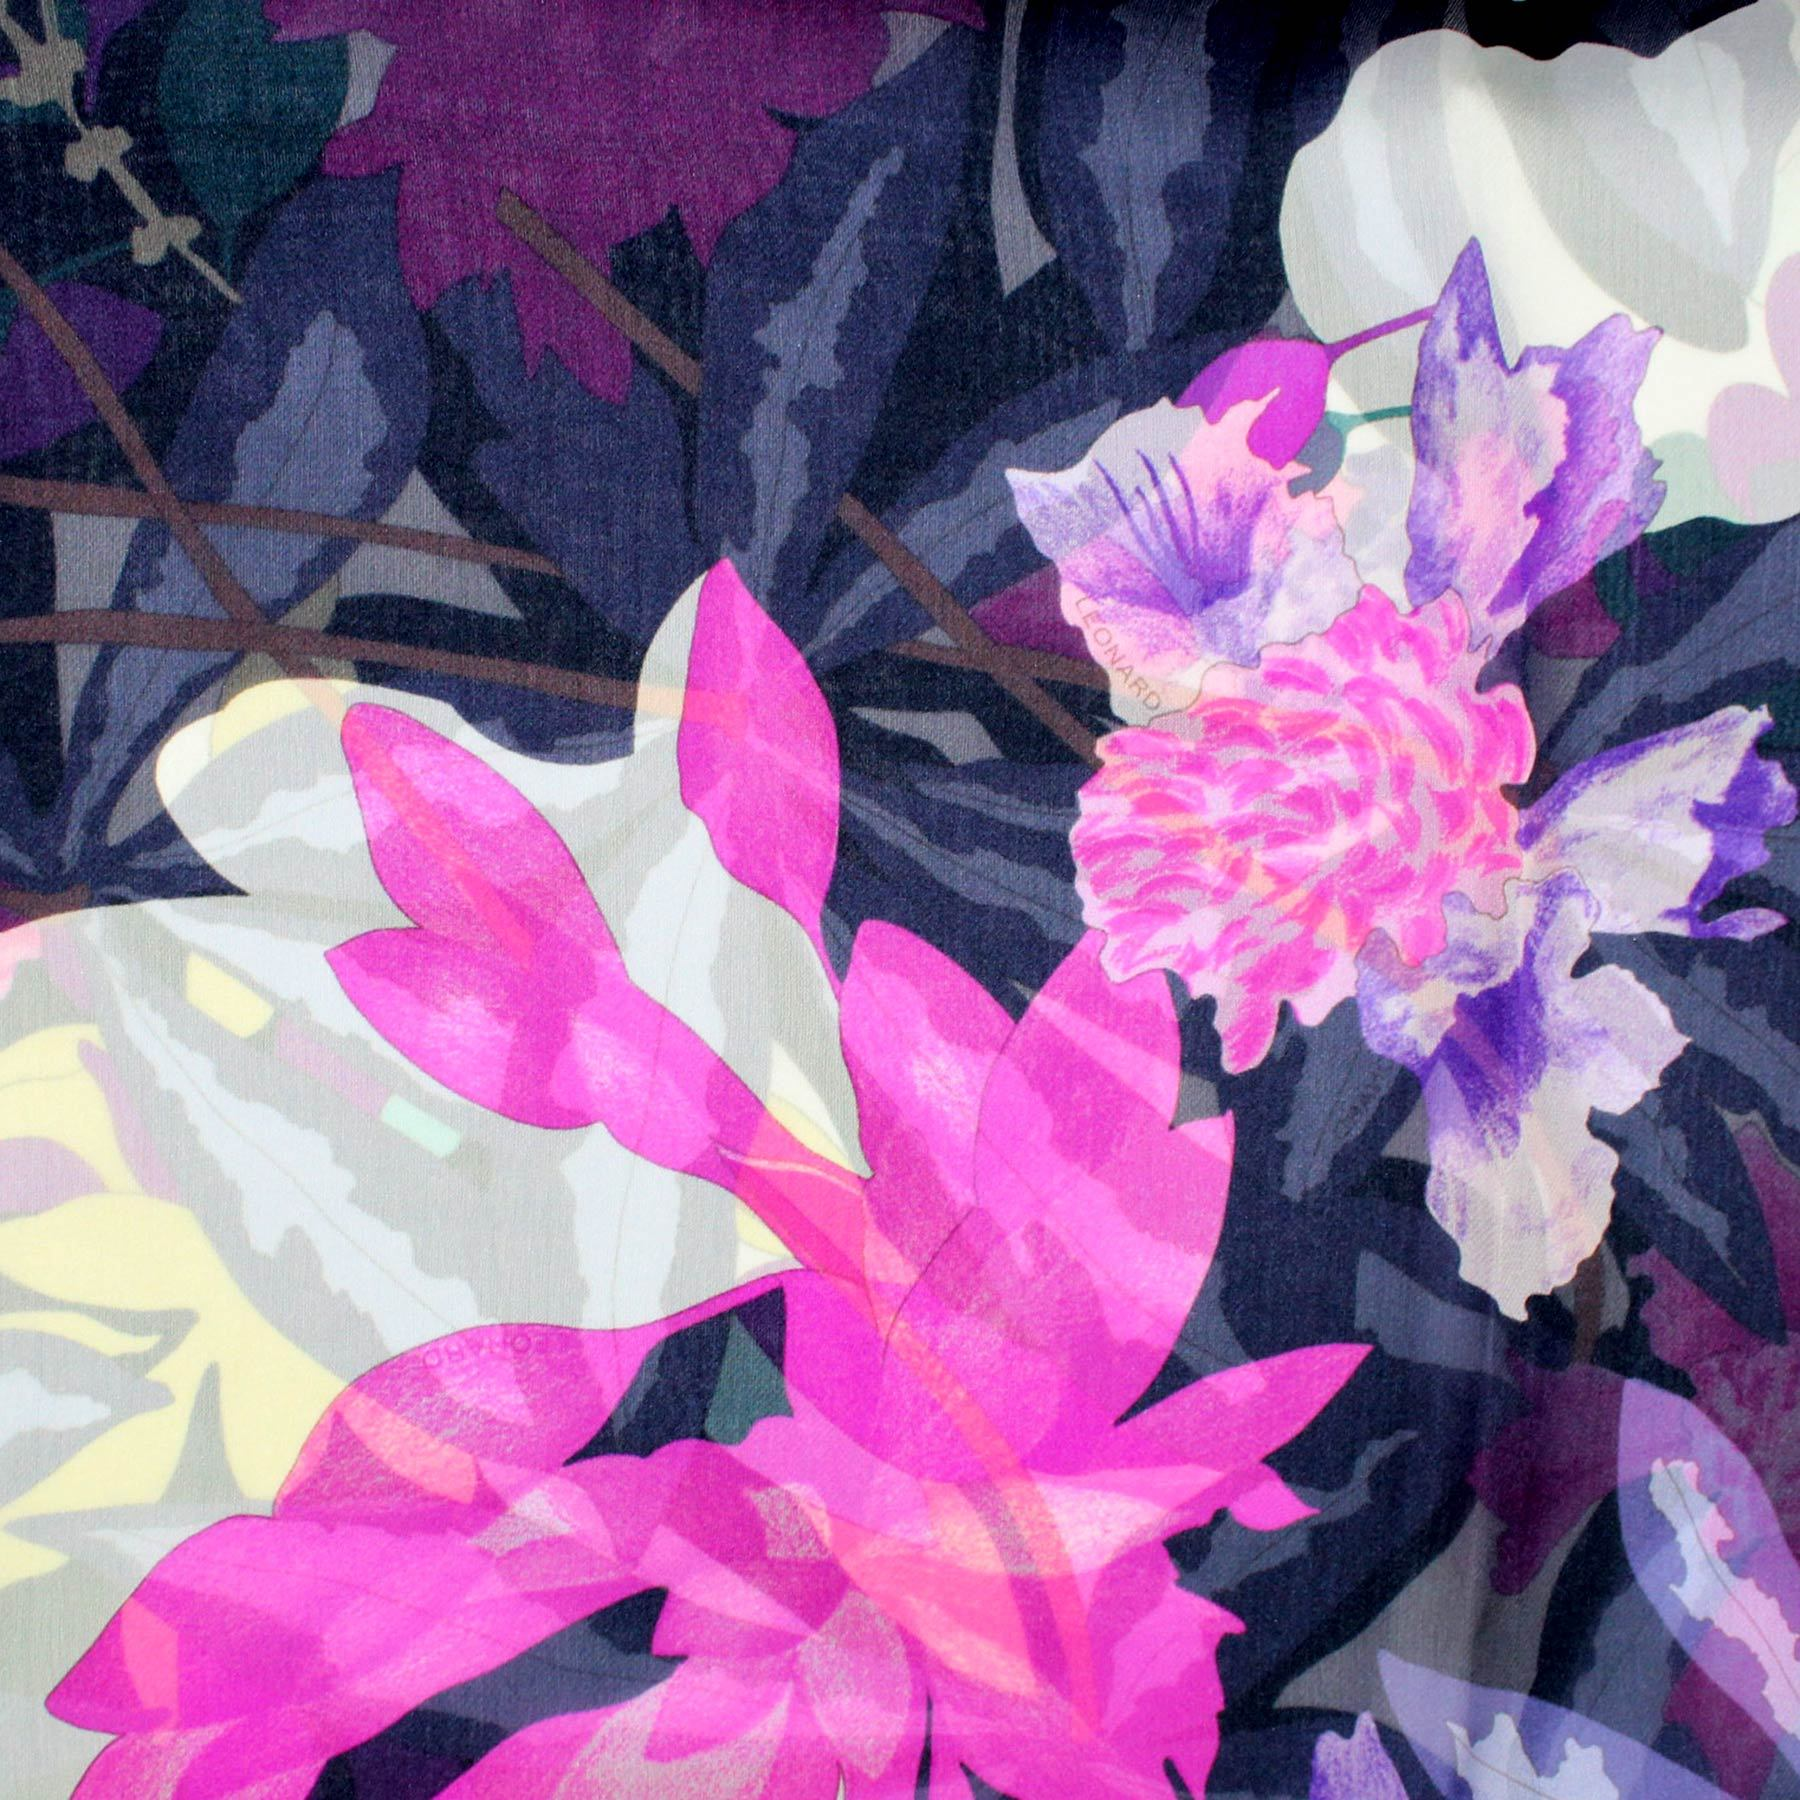 Leonard Paris Scarf Purple Floral Design - Chiffon Silk Shawl